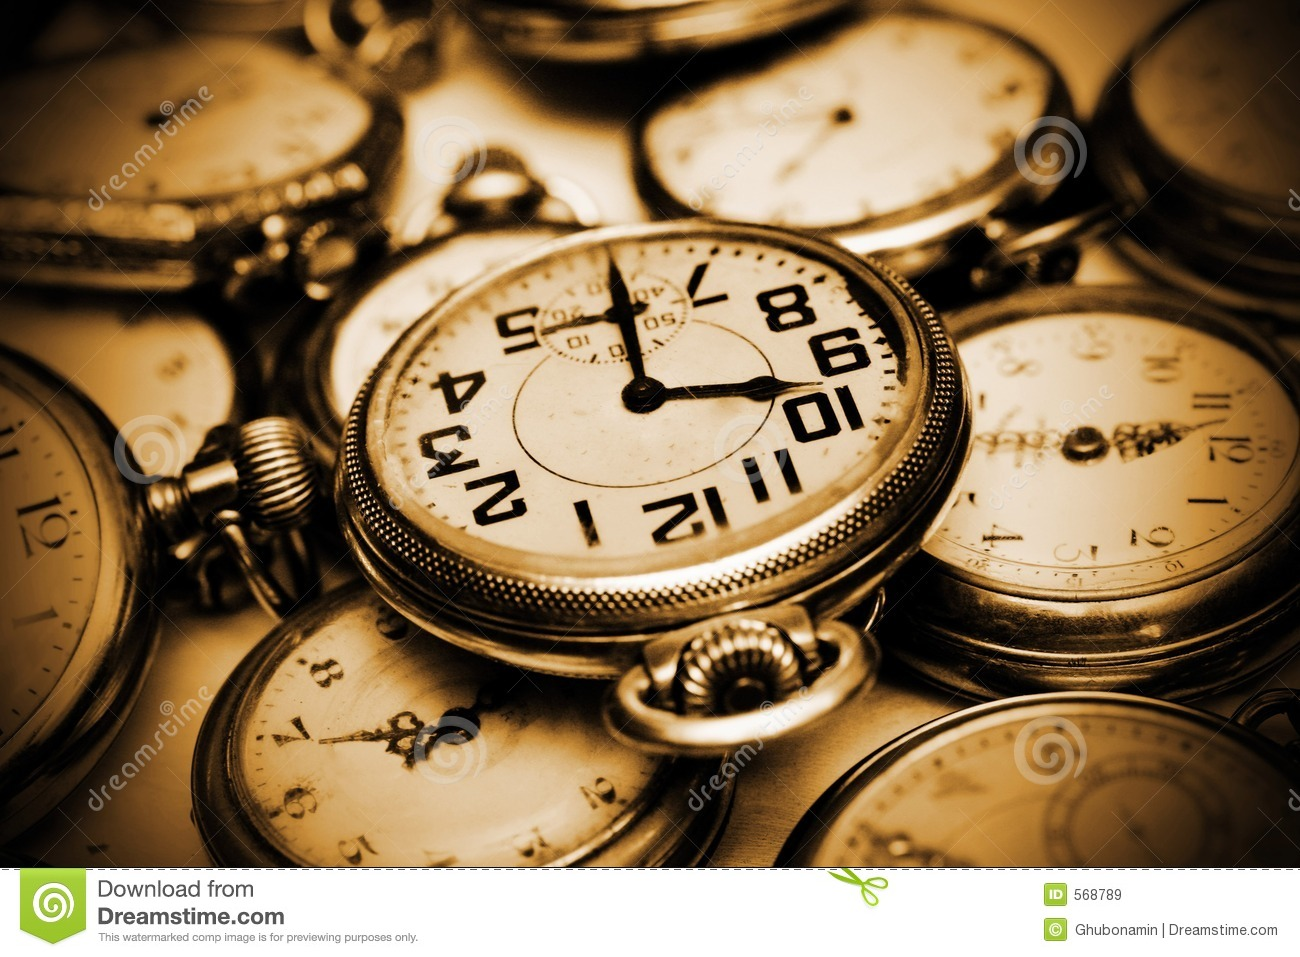 Https Www Dreamstime Com Royalty Free Stock Images Old Watches Image568789